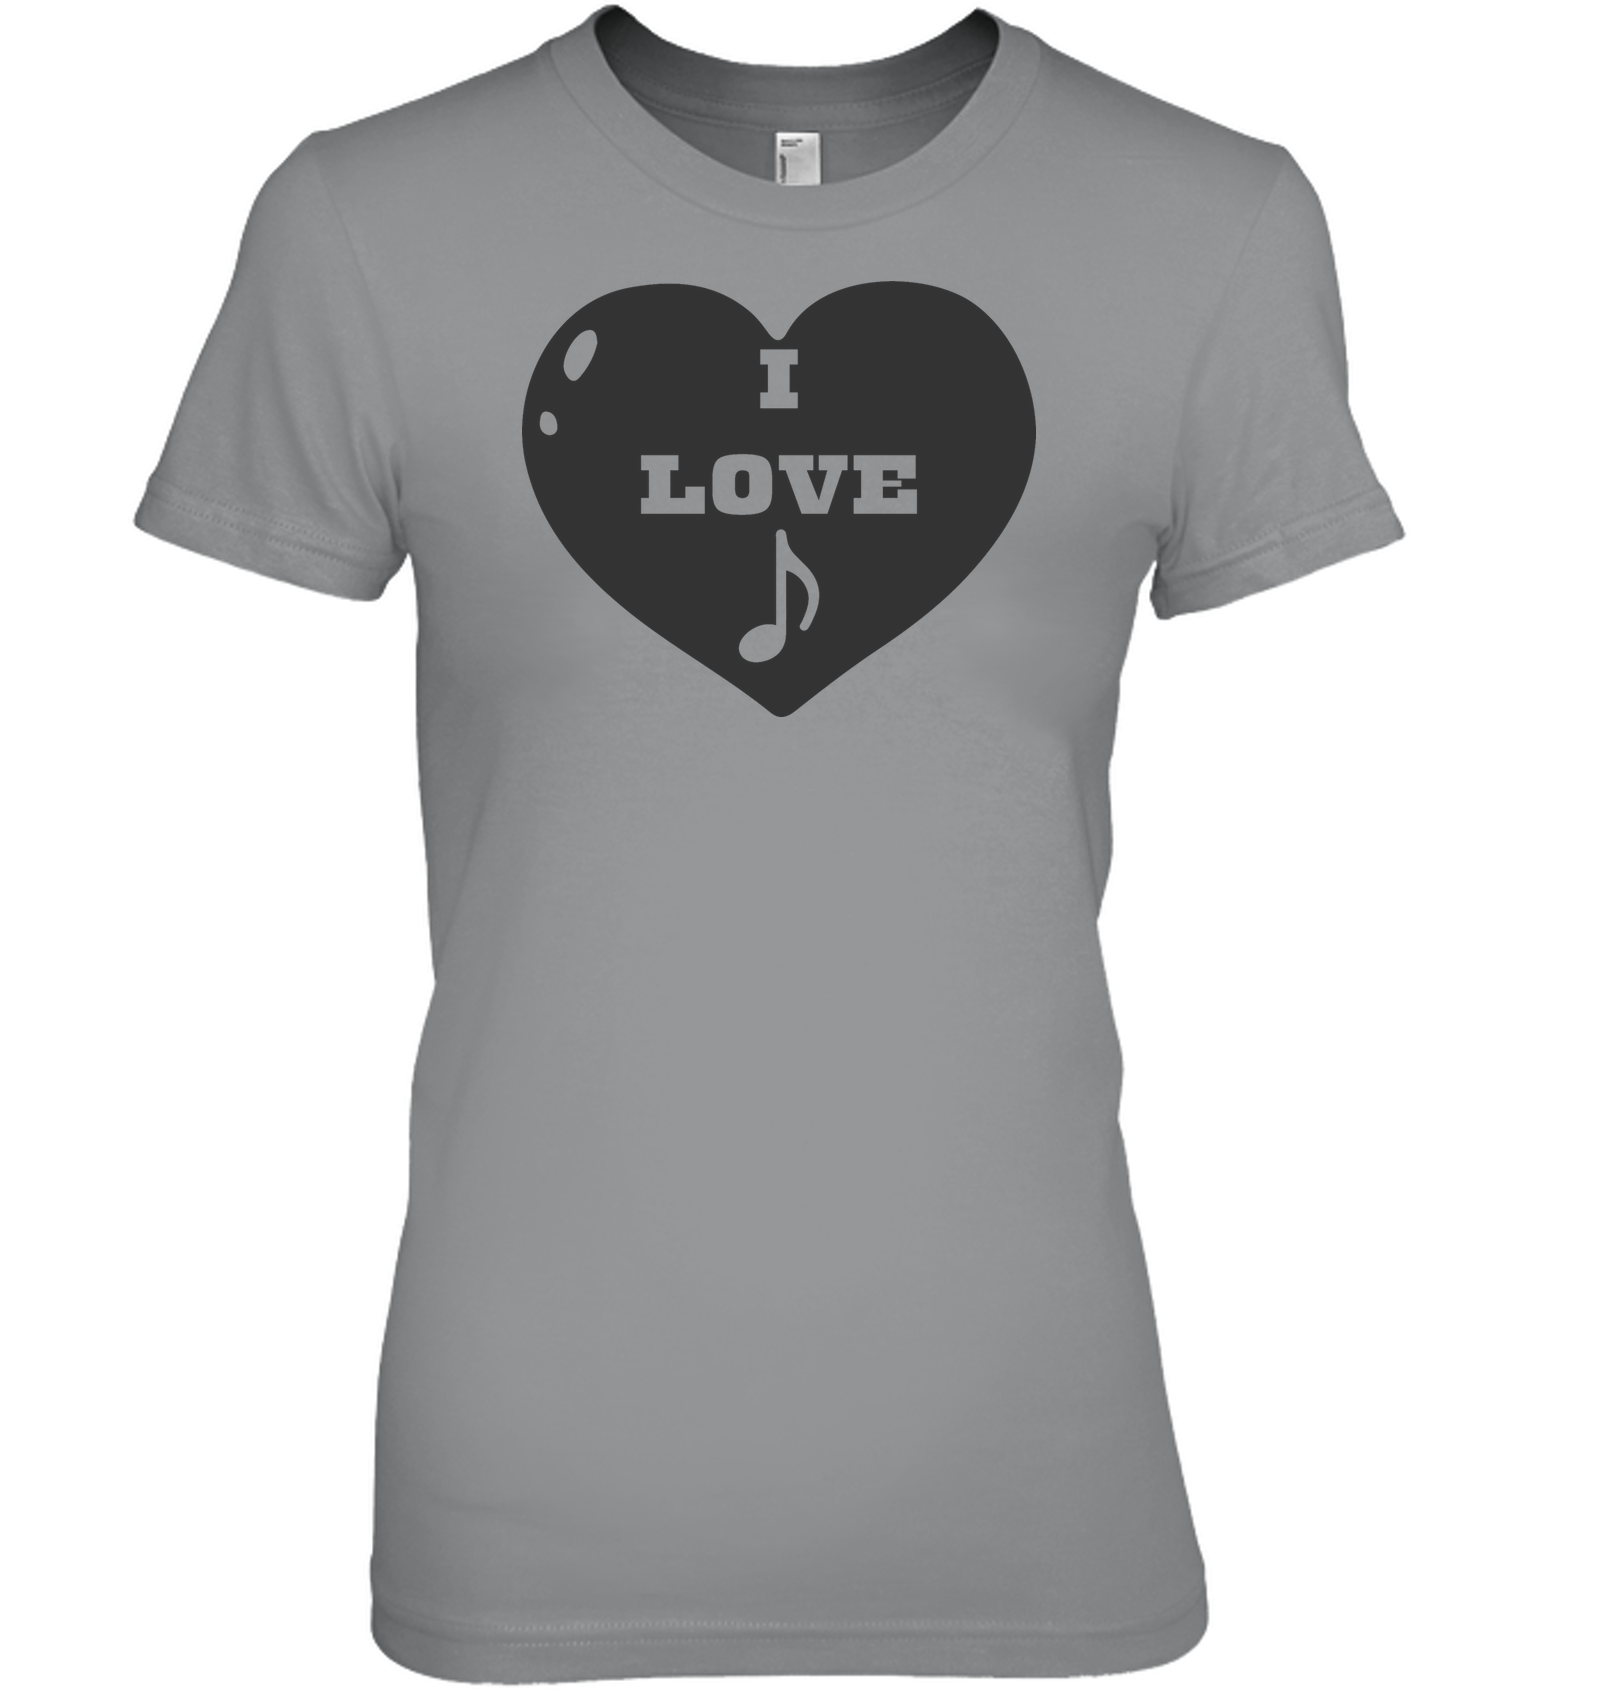 I Love Note Heart - Hanes Women's Nano-T® T-shirt